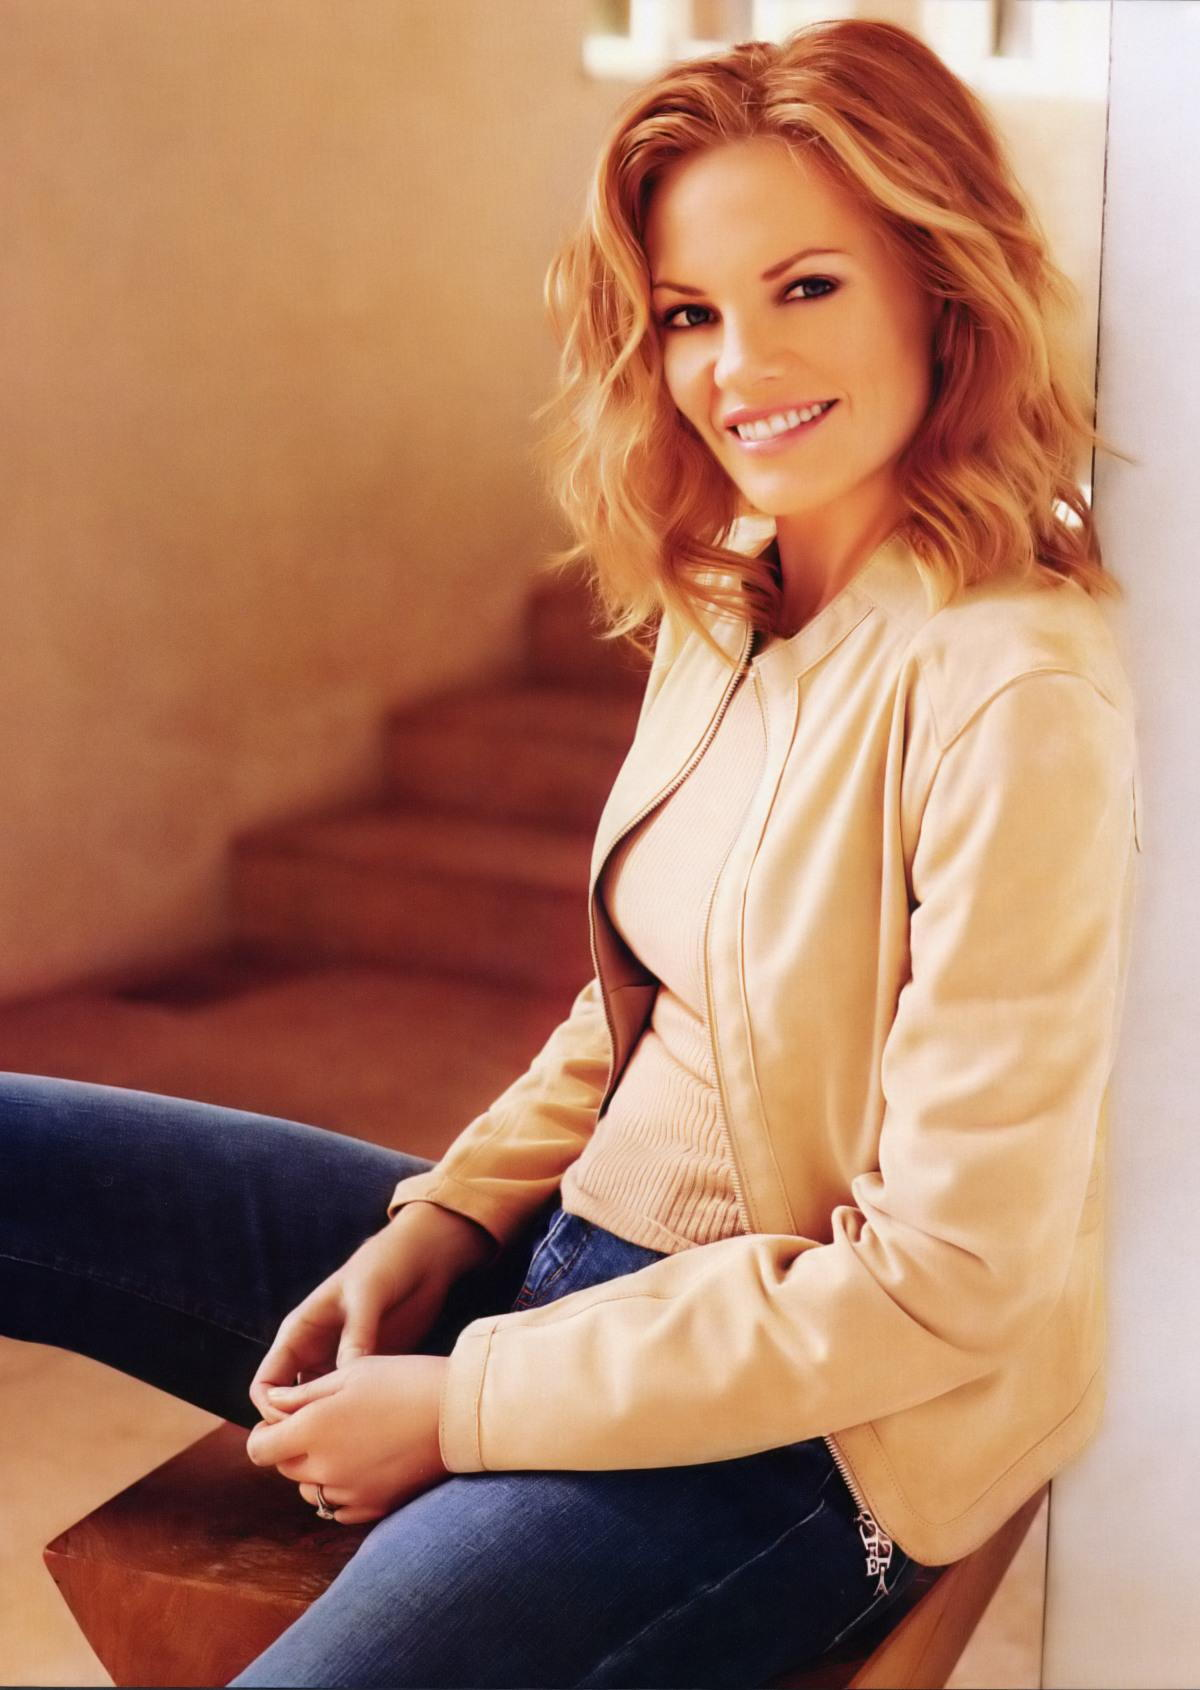 Marg Helgenberger Hot Pictures - Latinas Sexy Pics